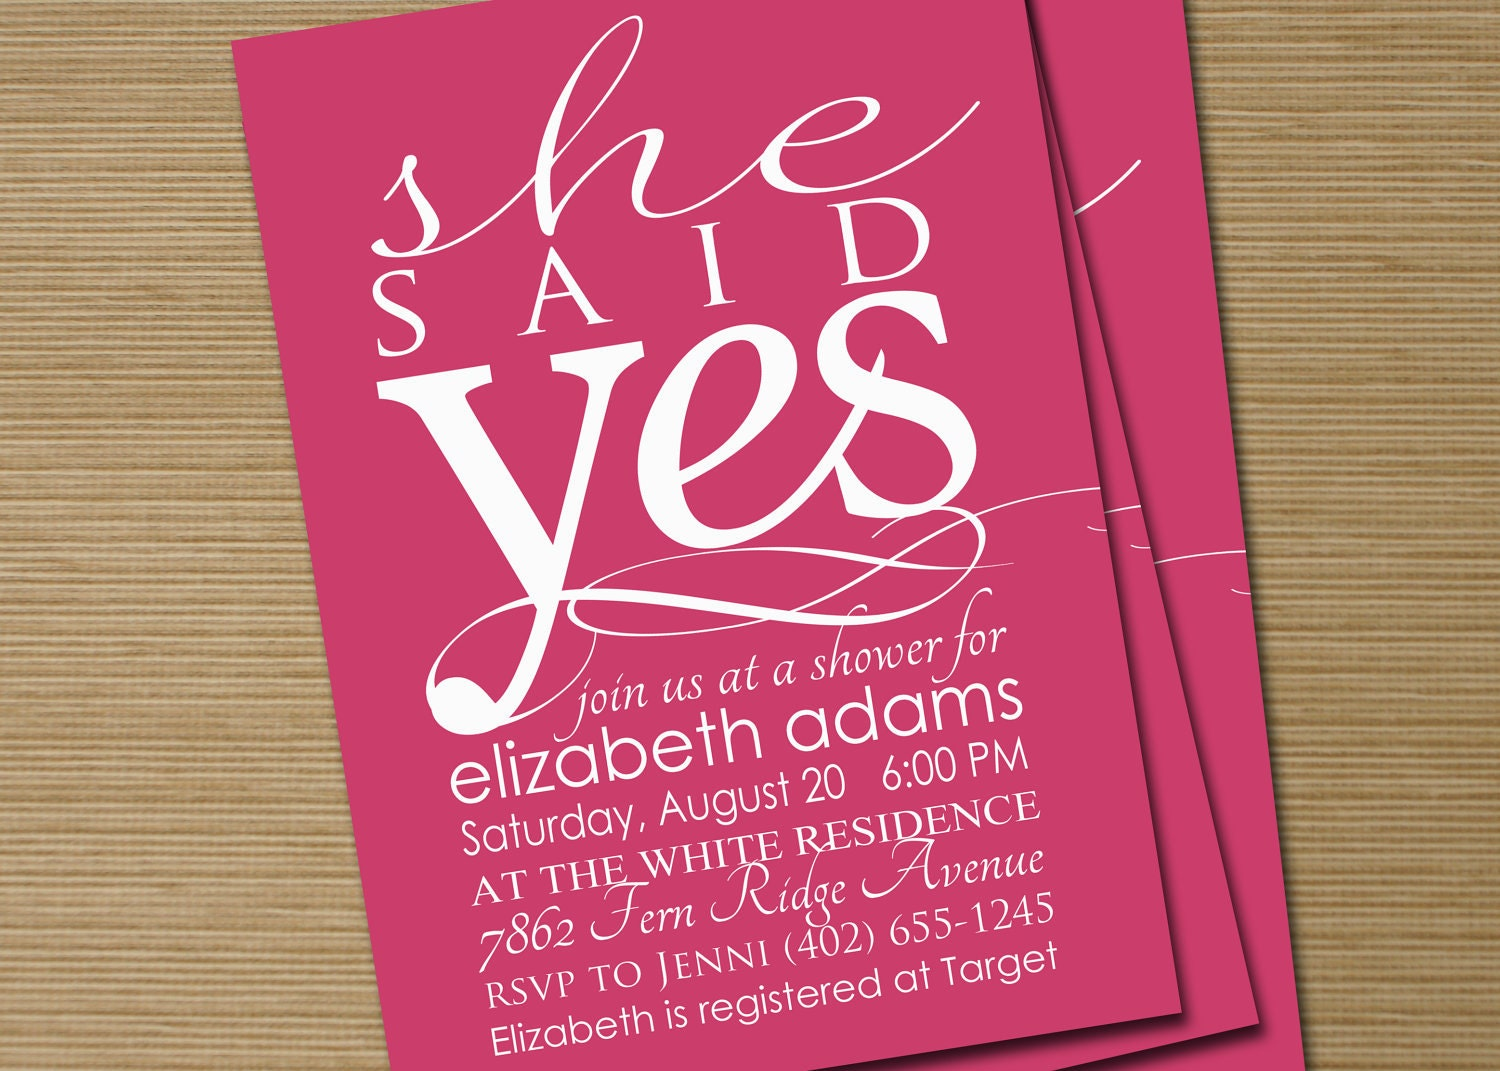 Wedding Shower Invitations Free: Bridal Shower Invite: Printable She Said Yes By Cardsetcetera